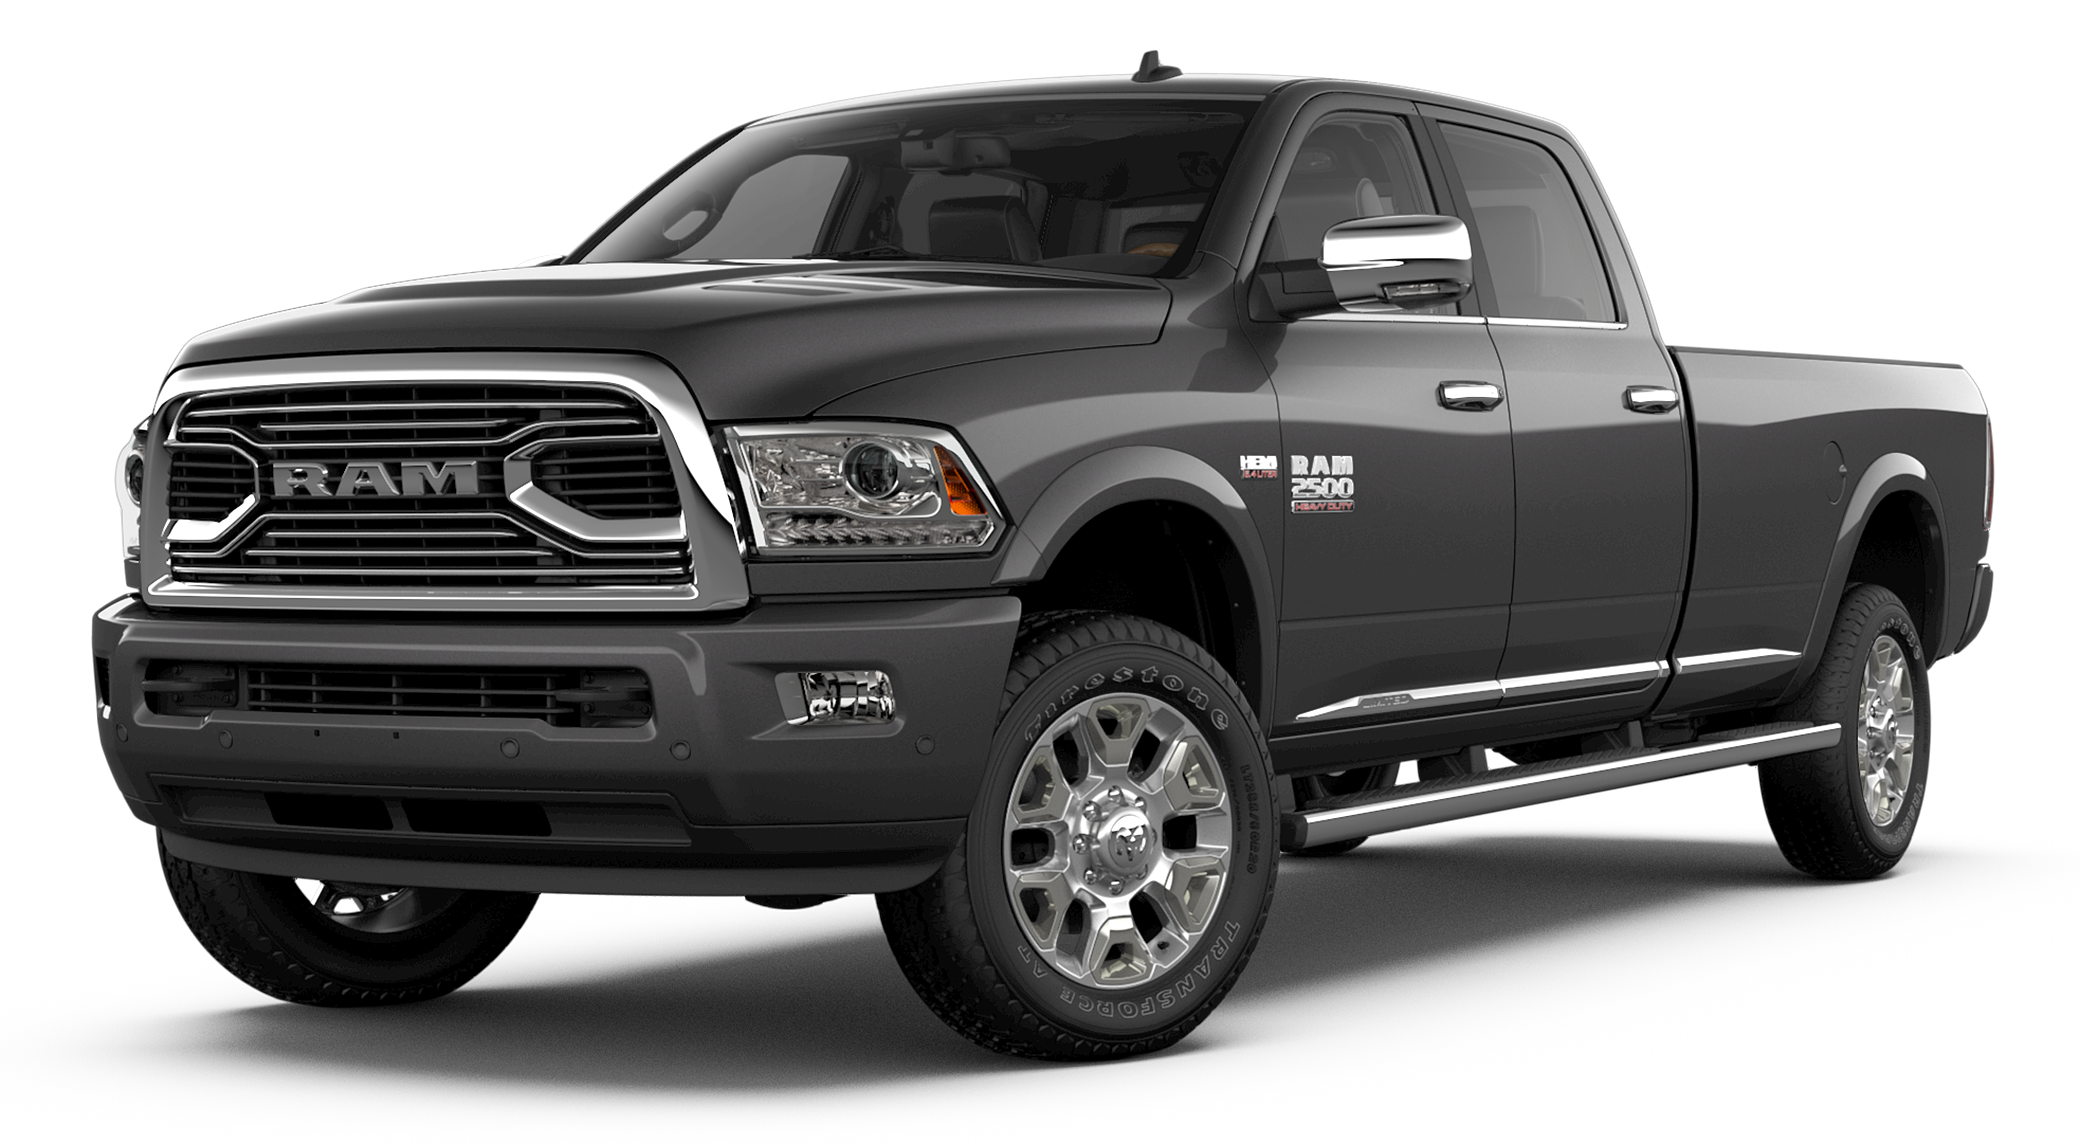 Review & Compare the 2018 Ram 2500 at Larry H. Miller